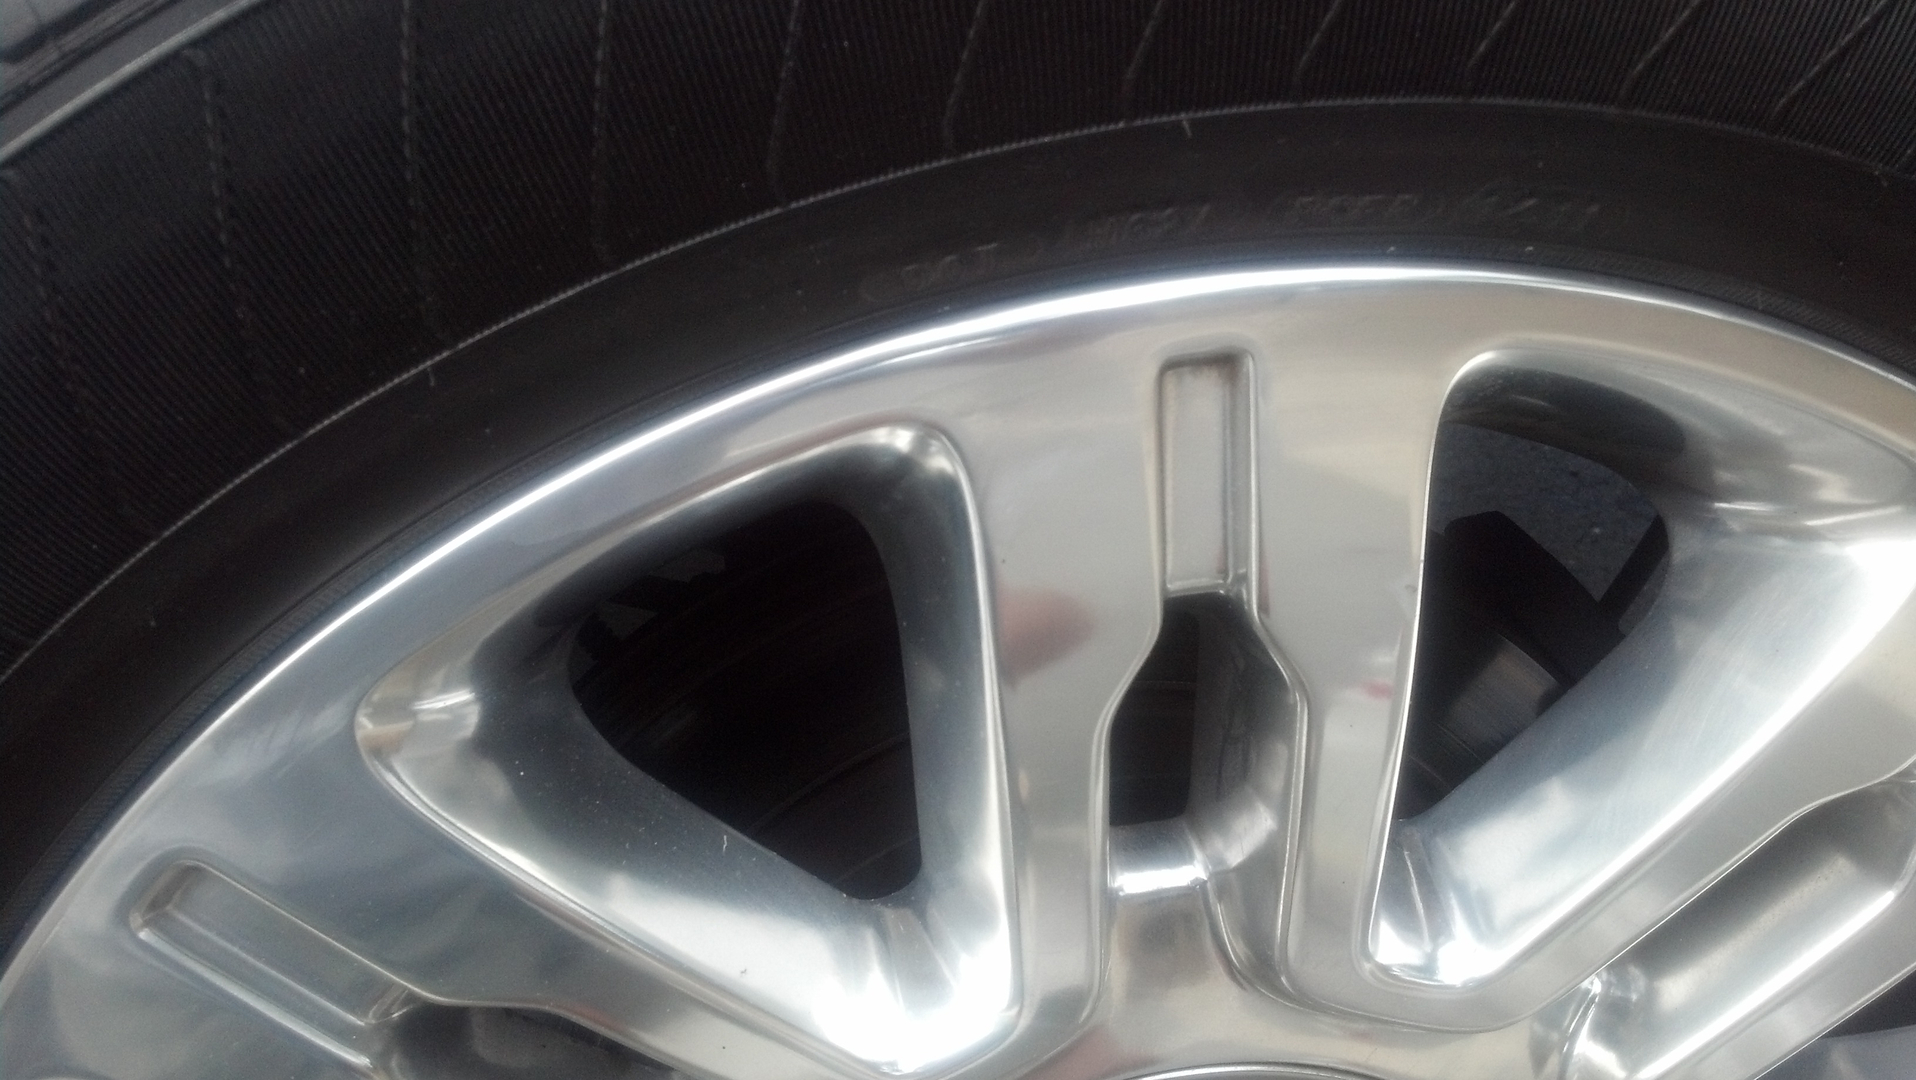 Prince Wheel Services Mobile Wheel Repair Bent Wheel Repair